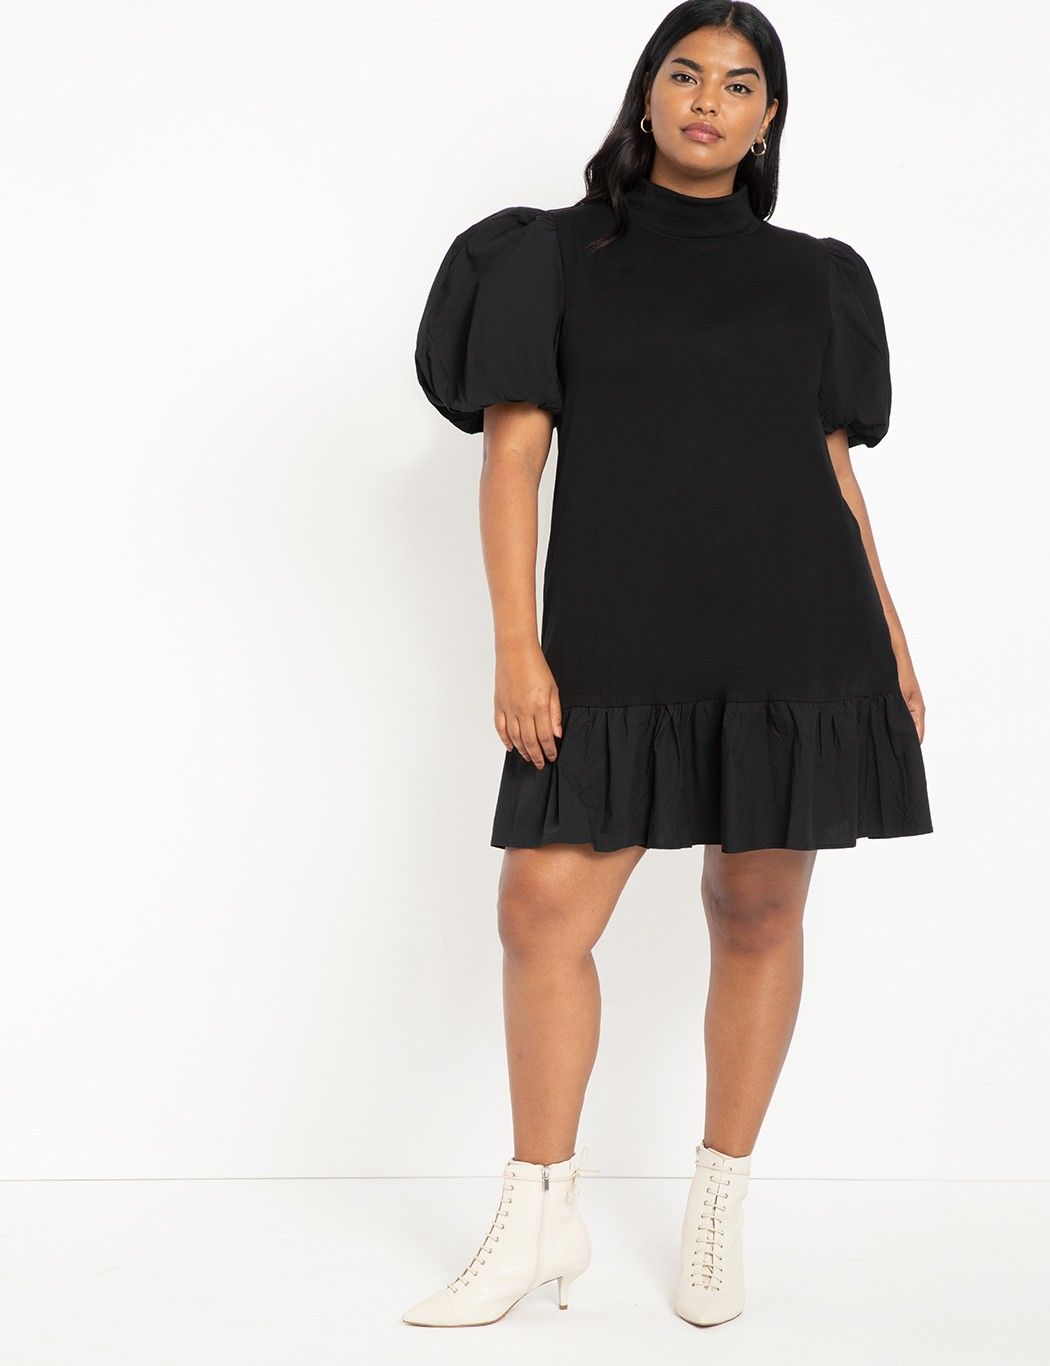 T Neck Easy Dress With Flounce Plus Size Short Dresses Simple Dresses Plus Size Dresses [ 1366 x 1050 Pixel ]